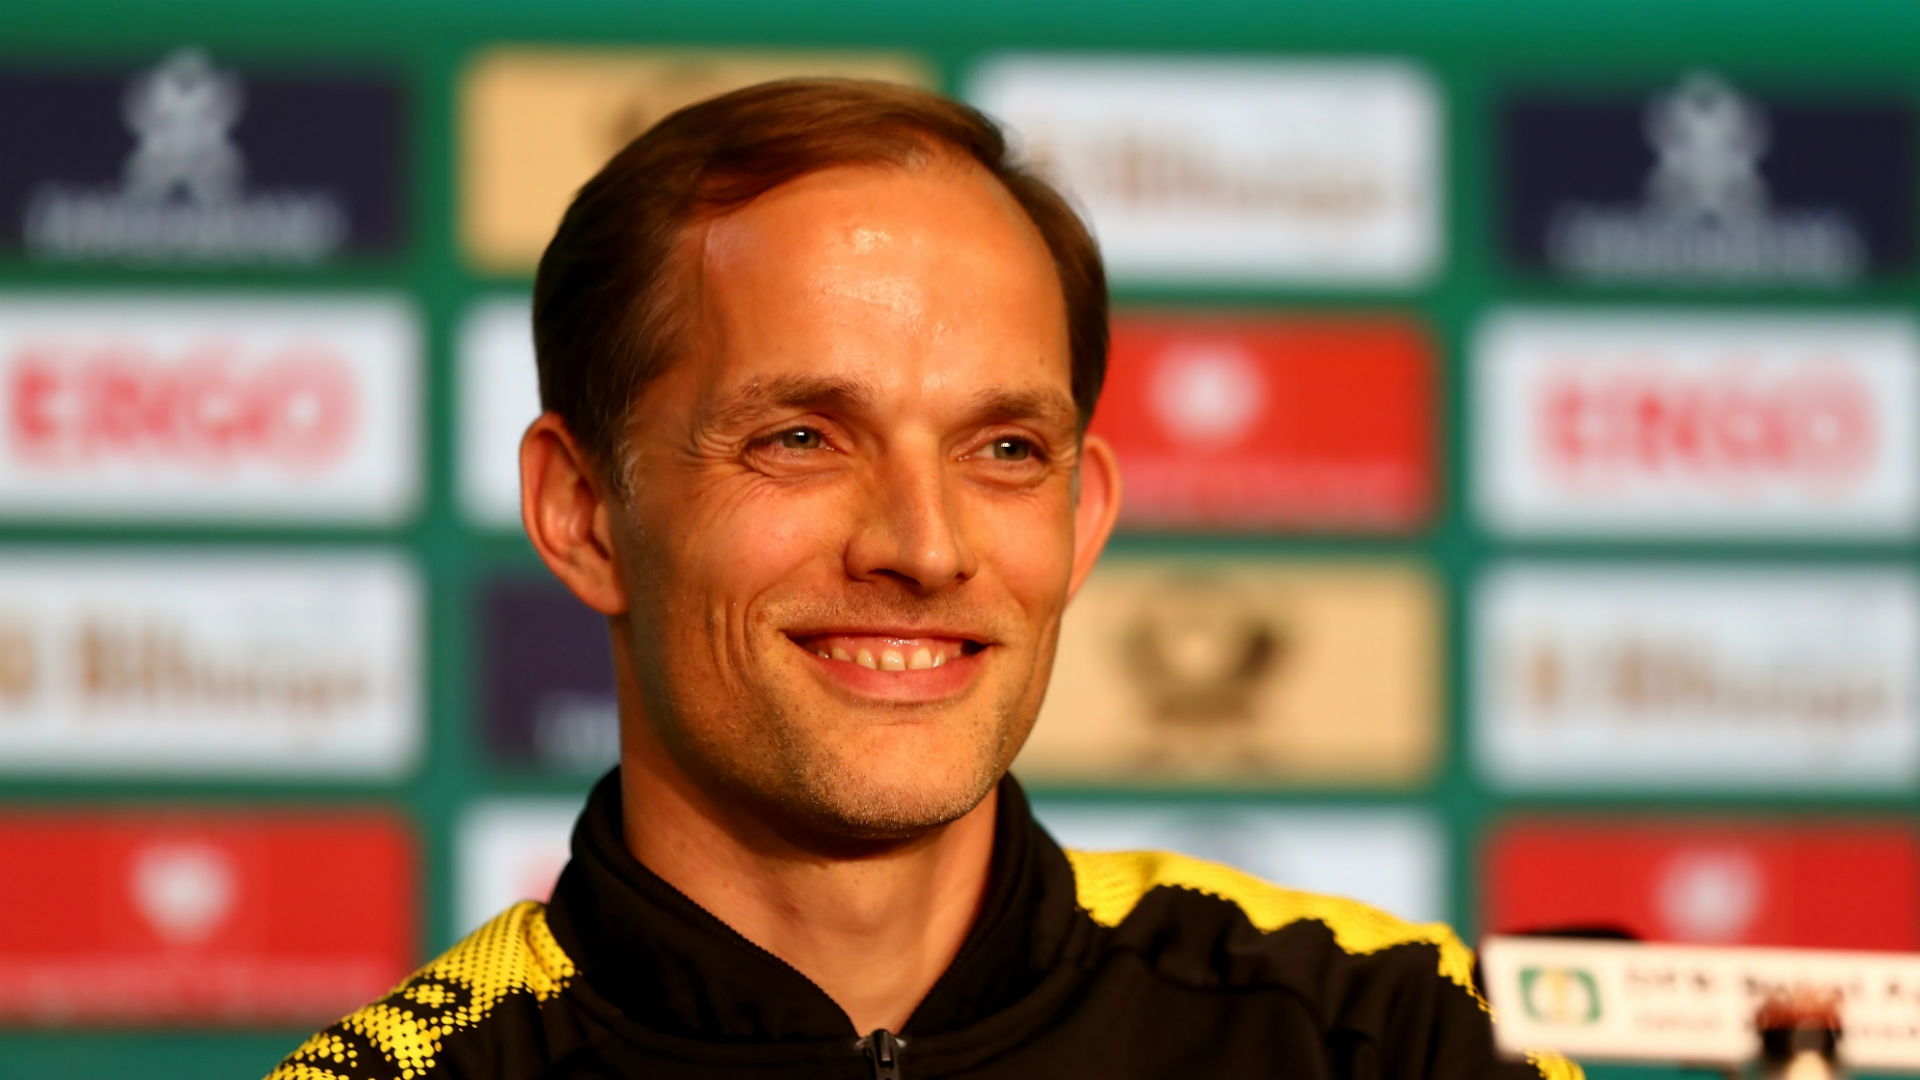 Thomas Tuchel gearing up to take charge of one of Europe's biggest clubs this Summer